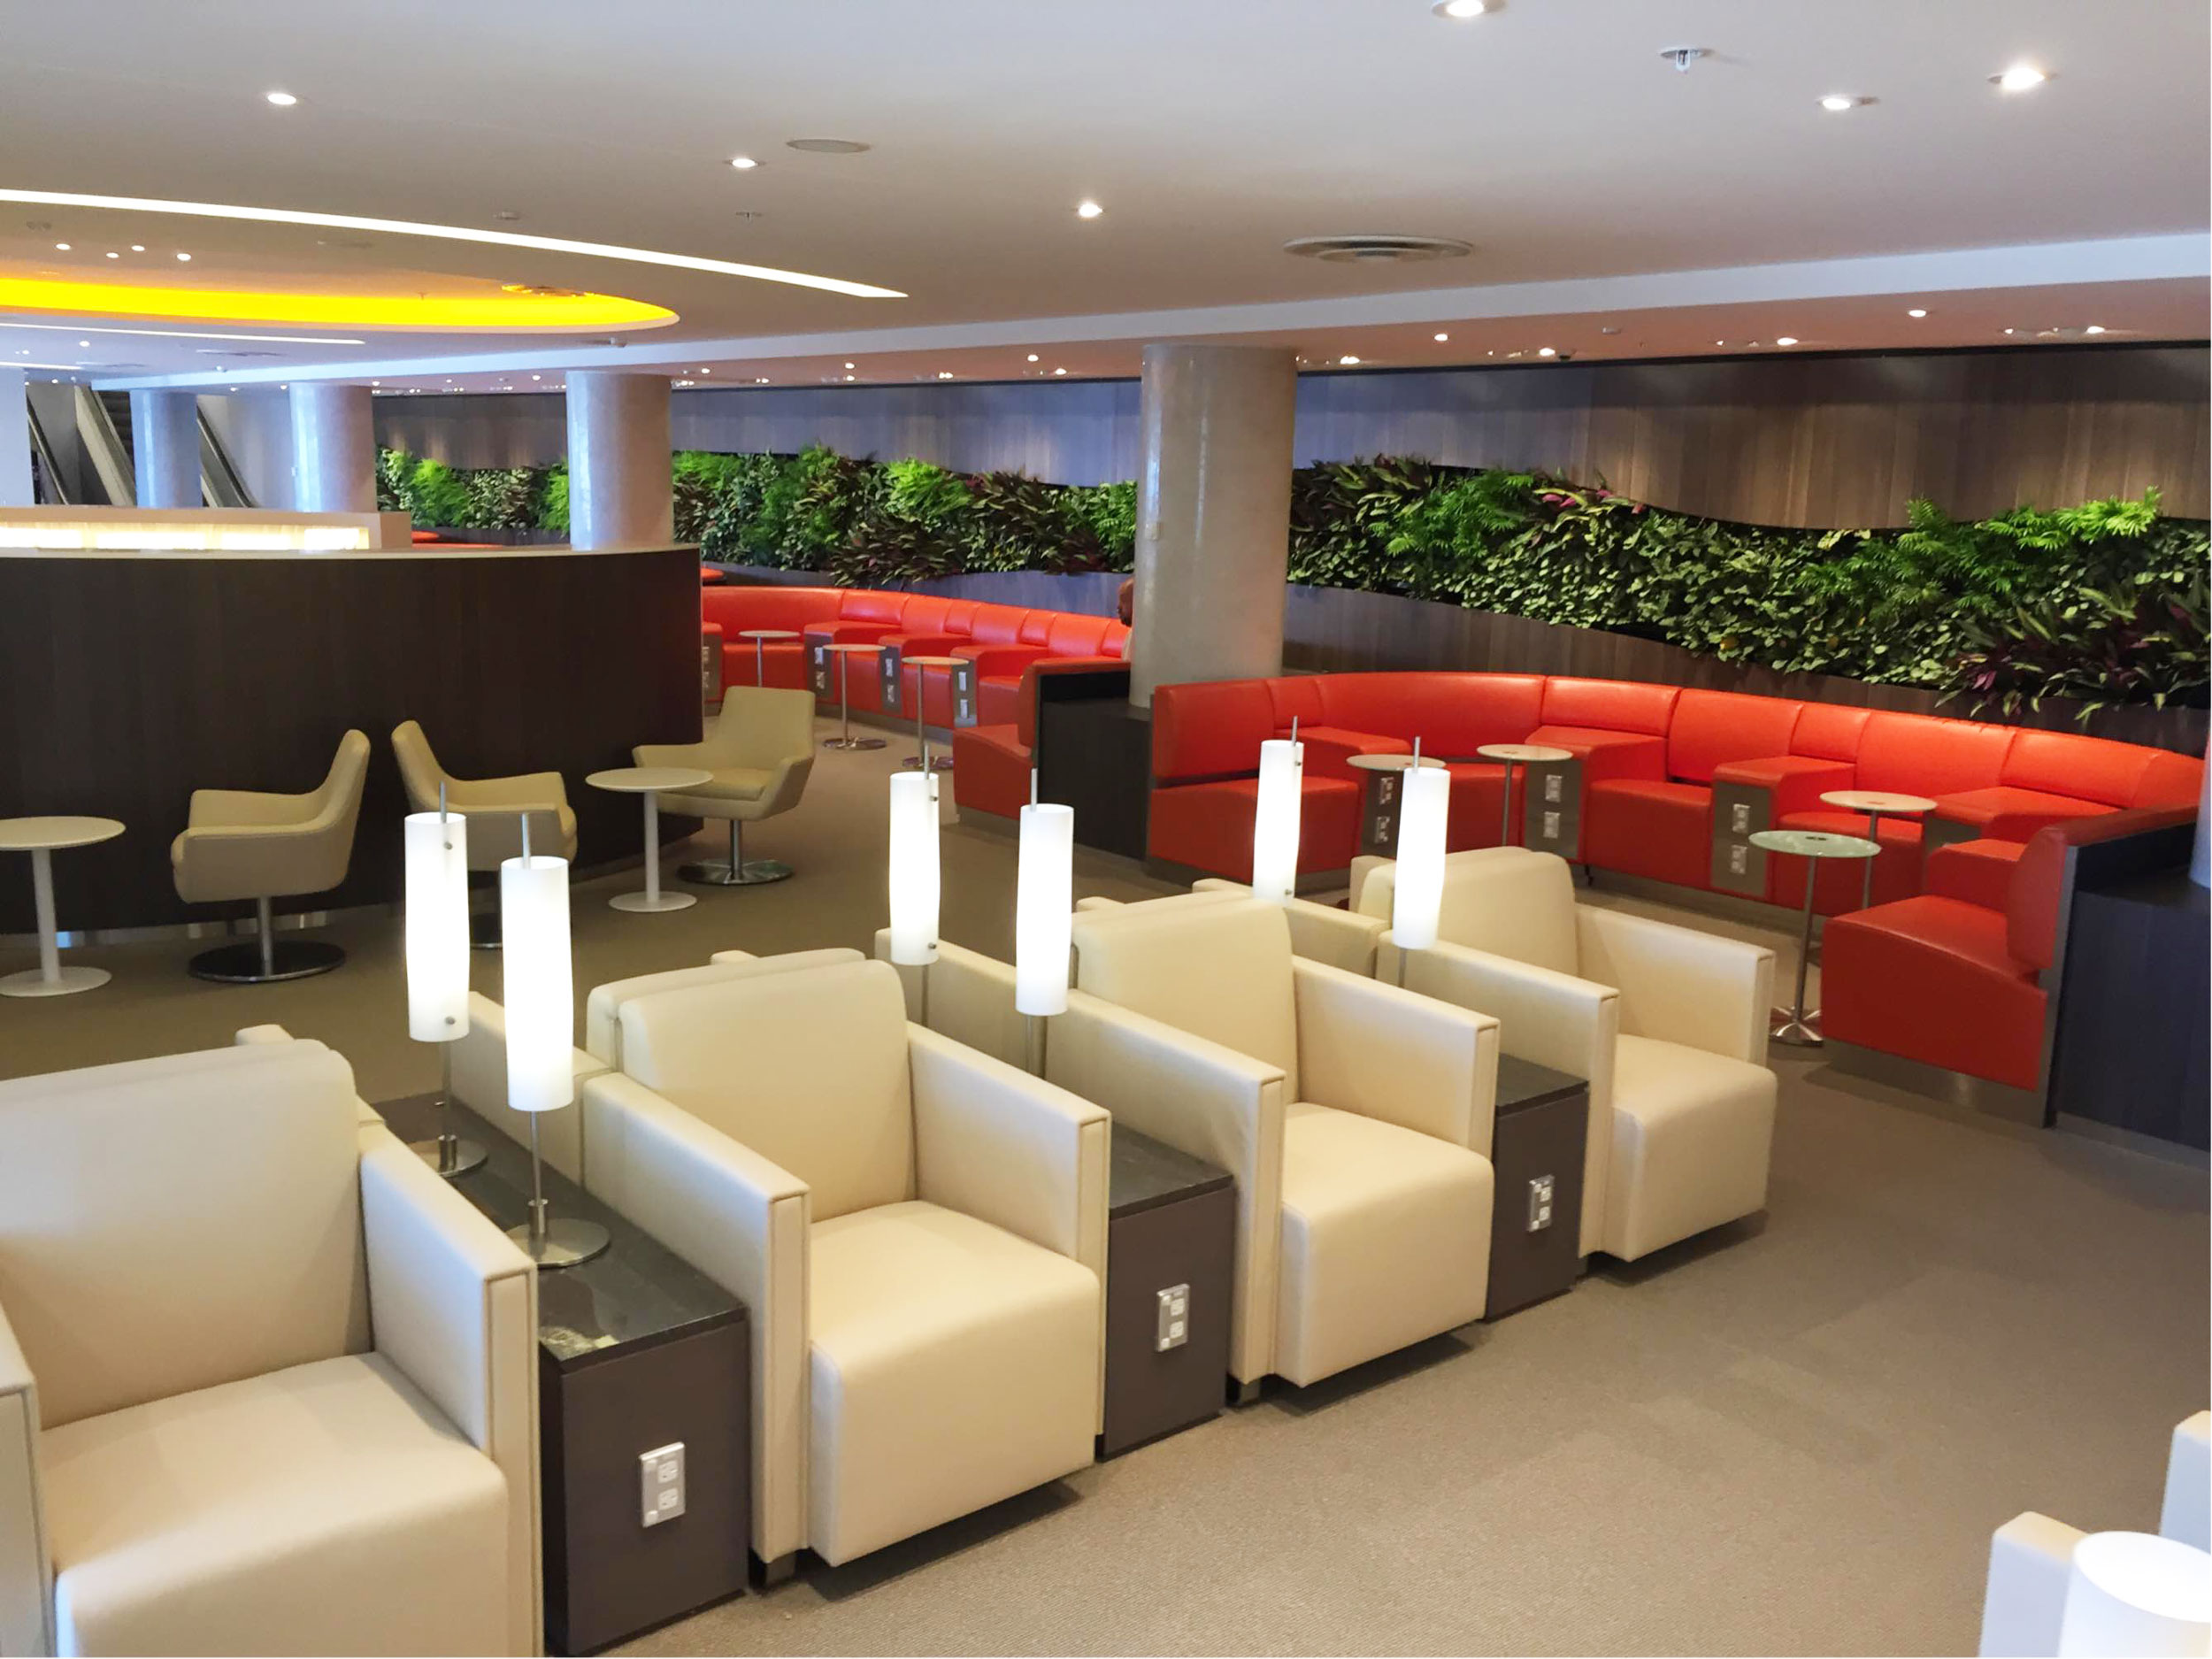 SkyTeam Lounge Sydney: An Inside Look-post-image